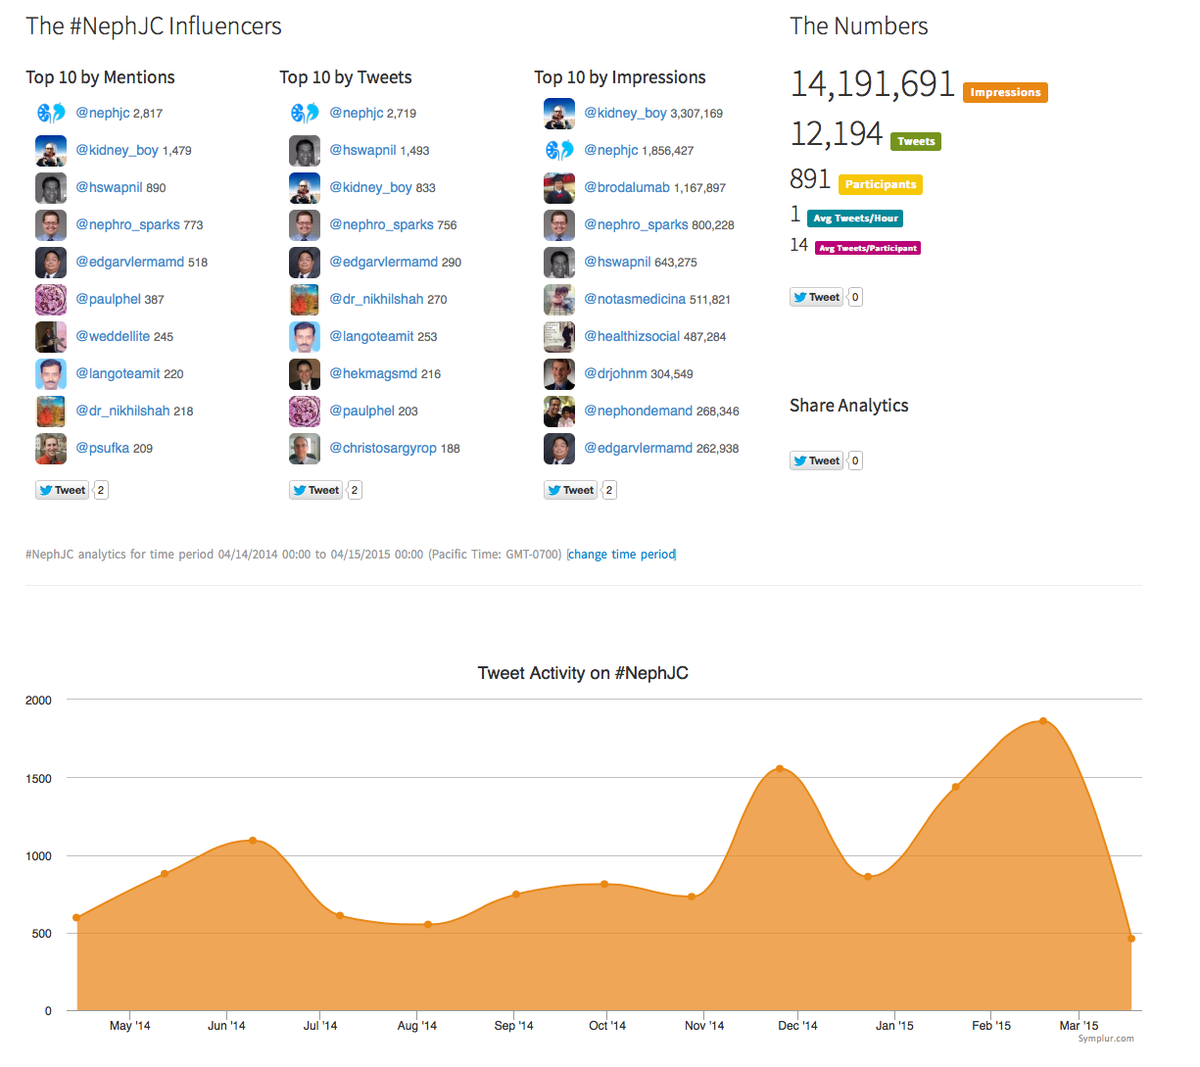 Tonights #NephJC completes one year.   12,194 tweets 891 participants! http://t.co/fOOYUD03HP via @symplur http://t.co/M0PQ3o1yLH